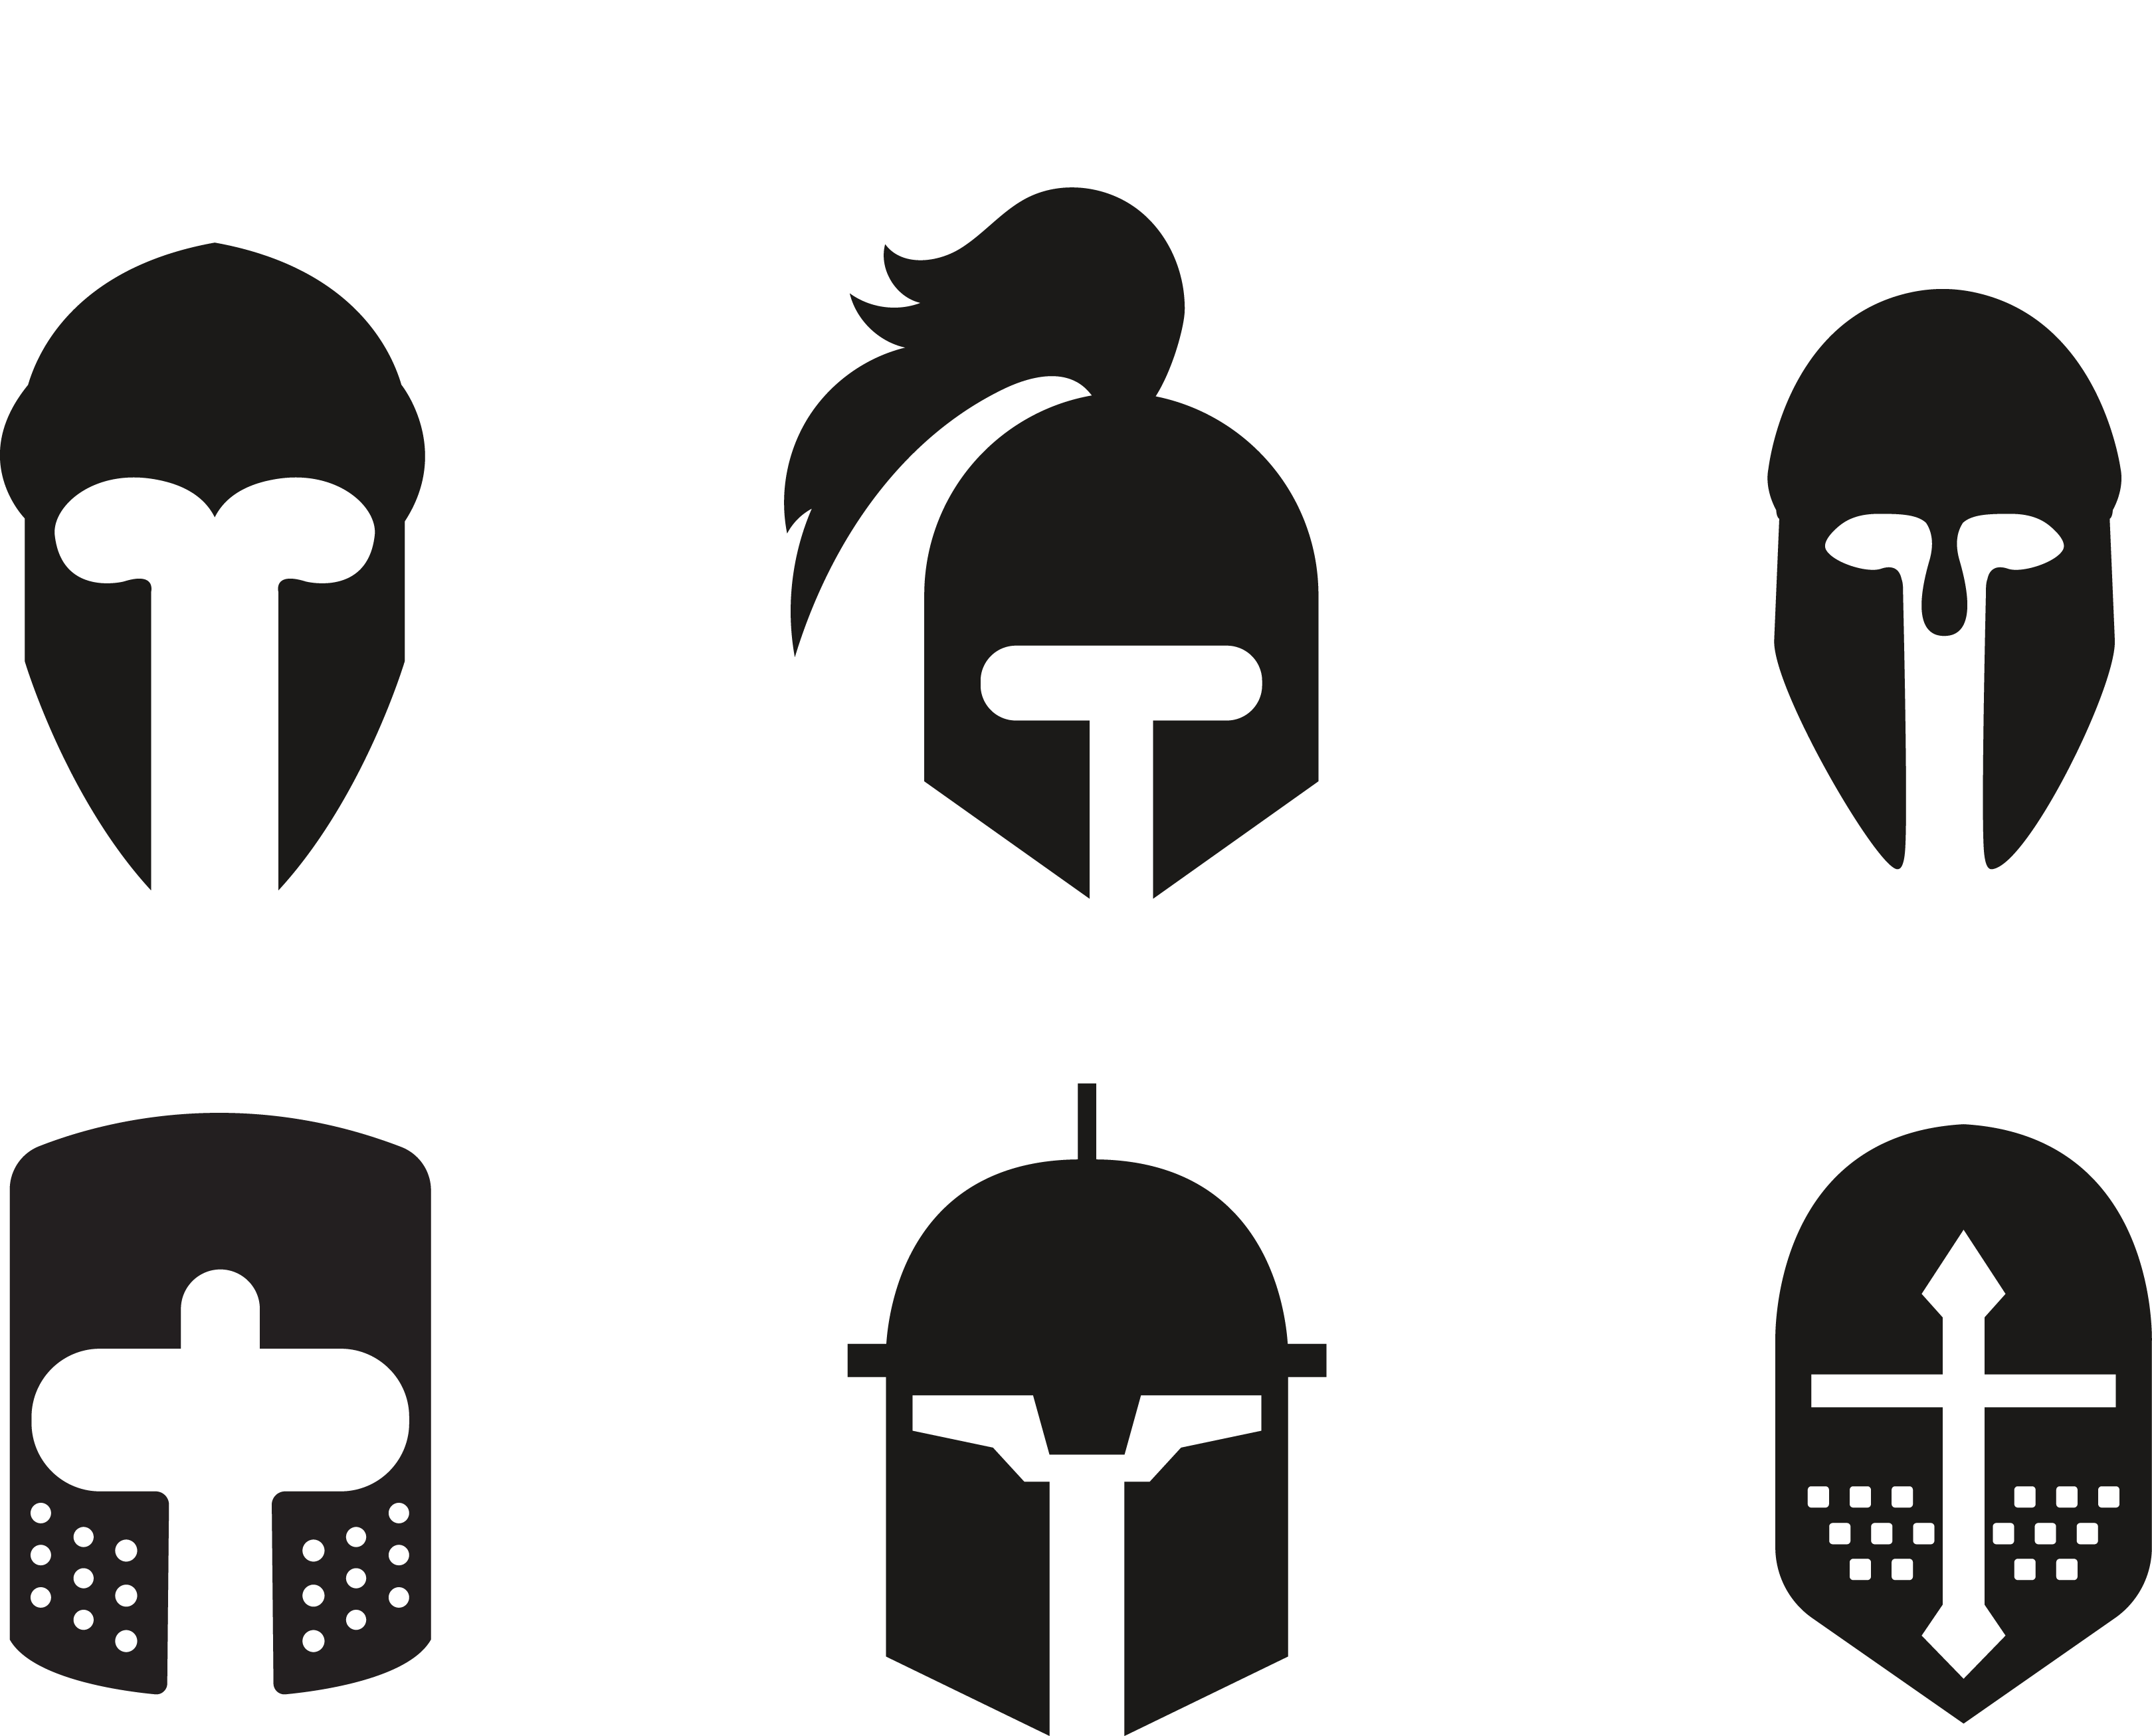 Knight Helmet Silhouette at GetDrawings.com | Free for ...